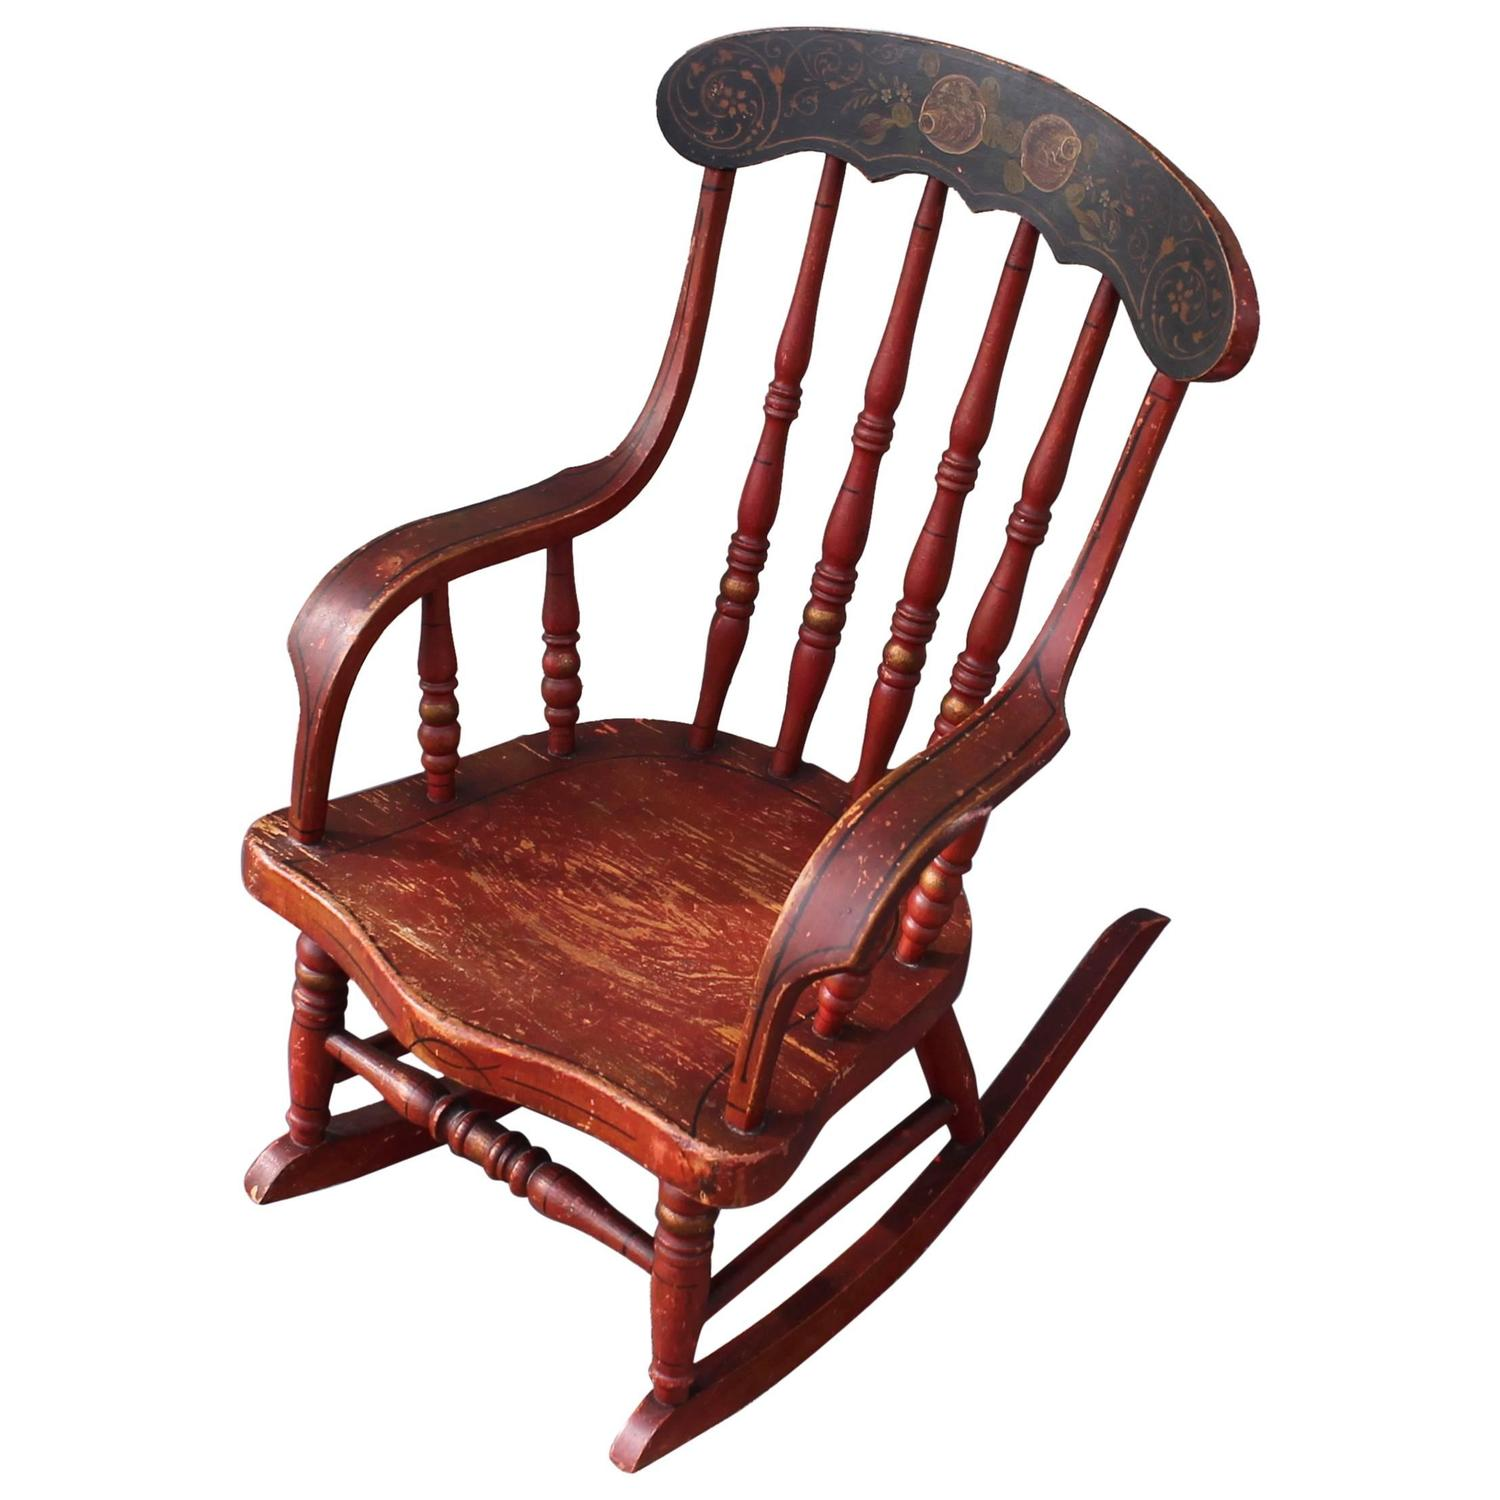 Red Rocking Chair 19th Century Original Red Paint Decorated Child 39s Rocking